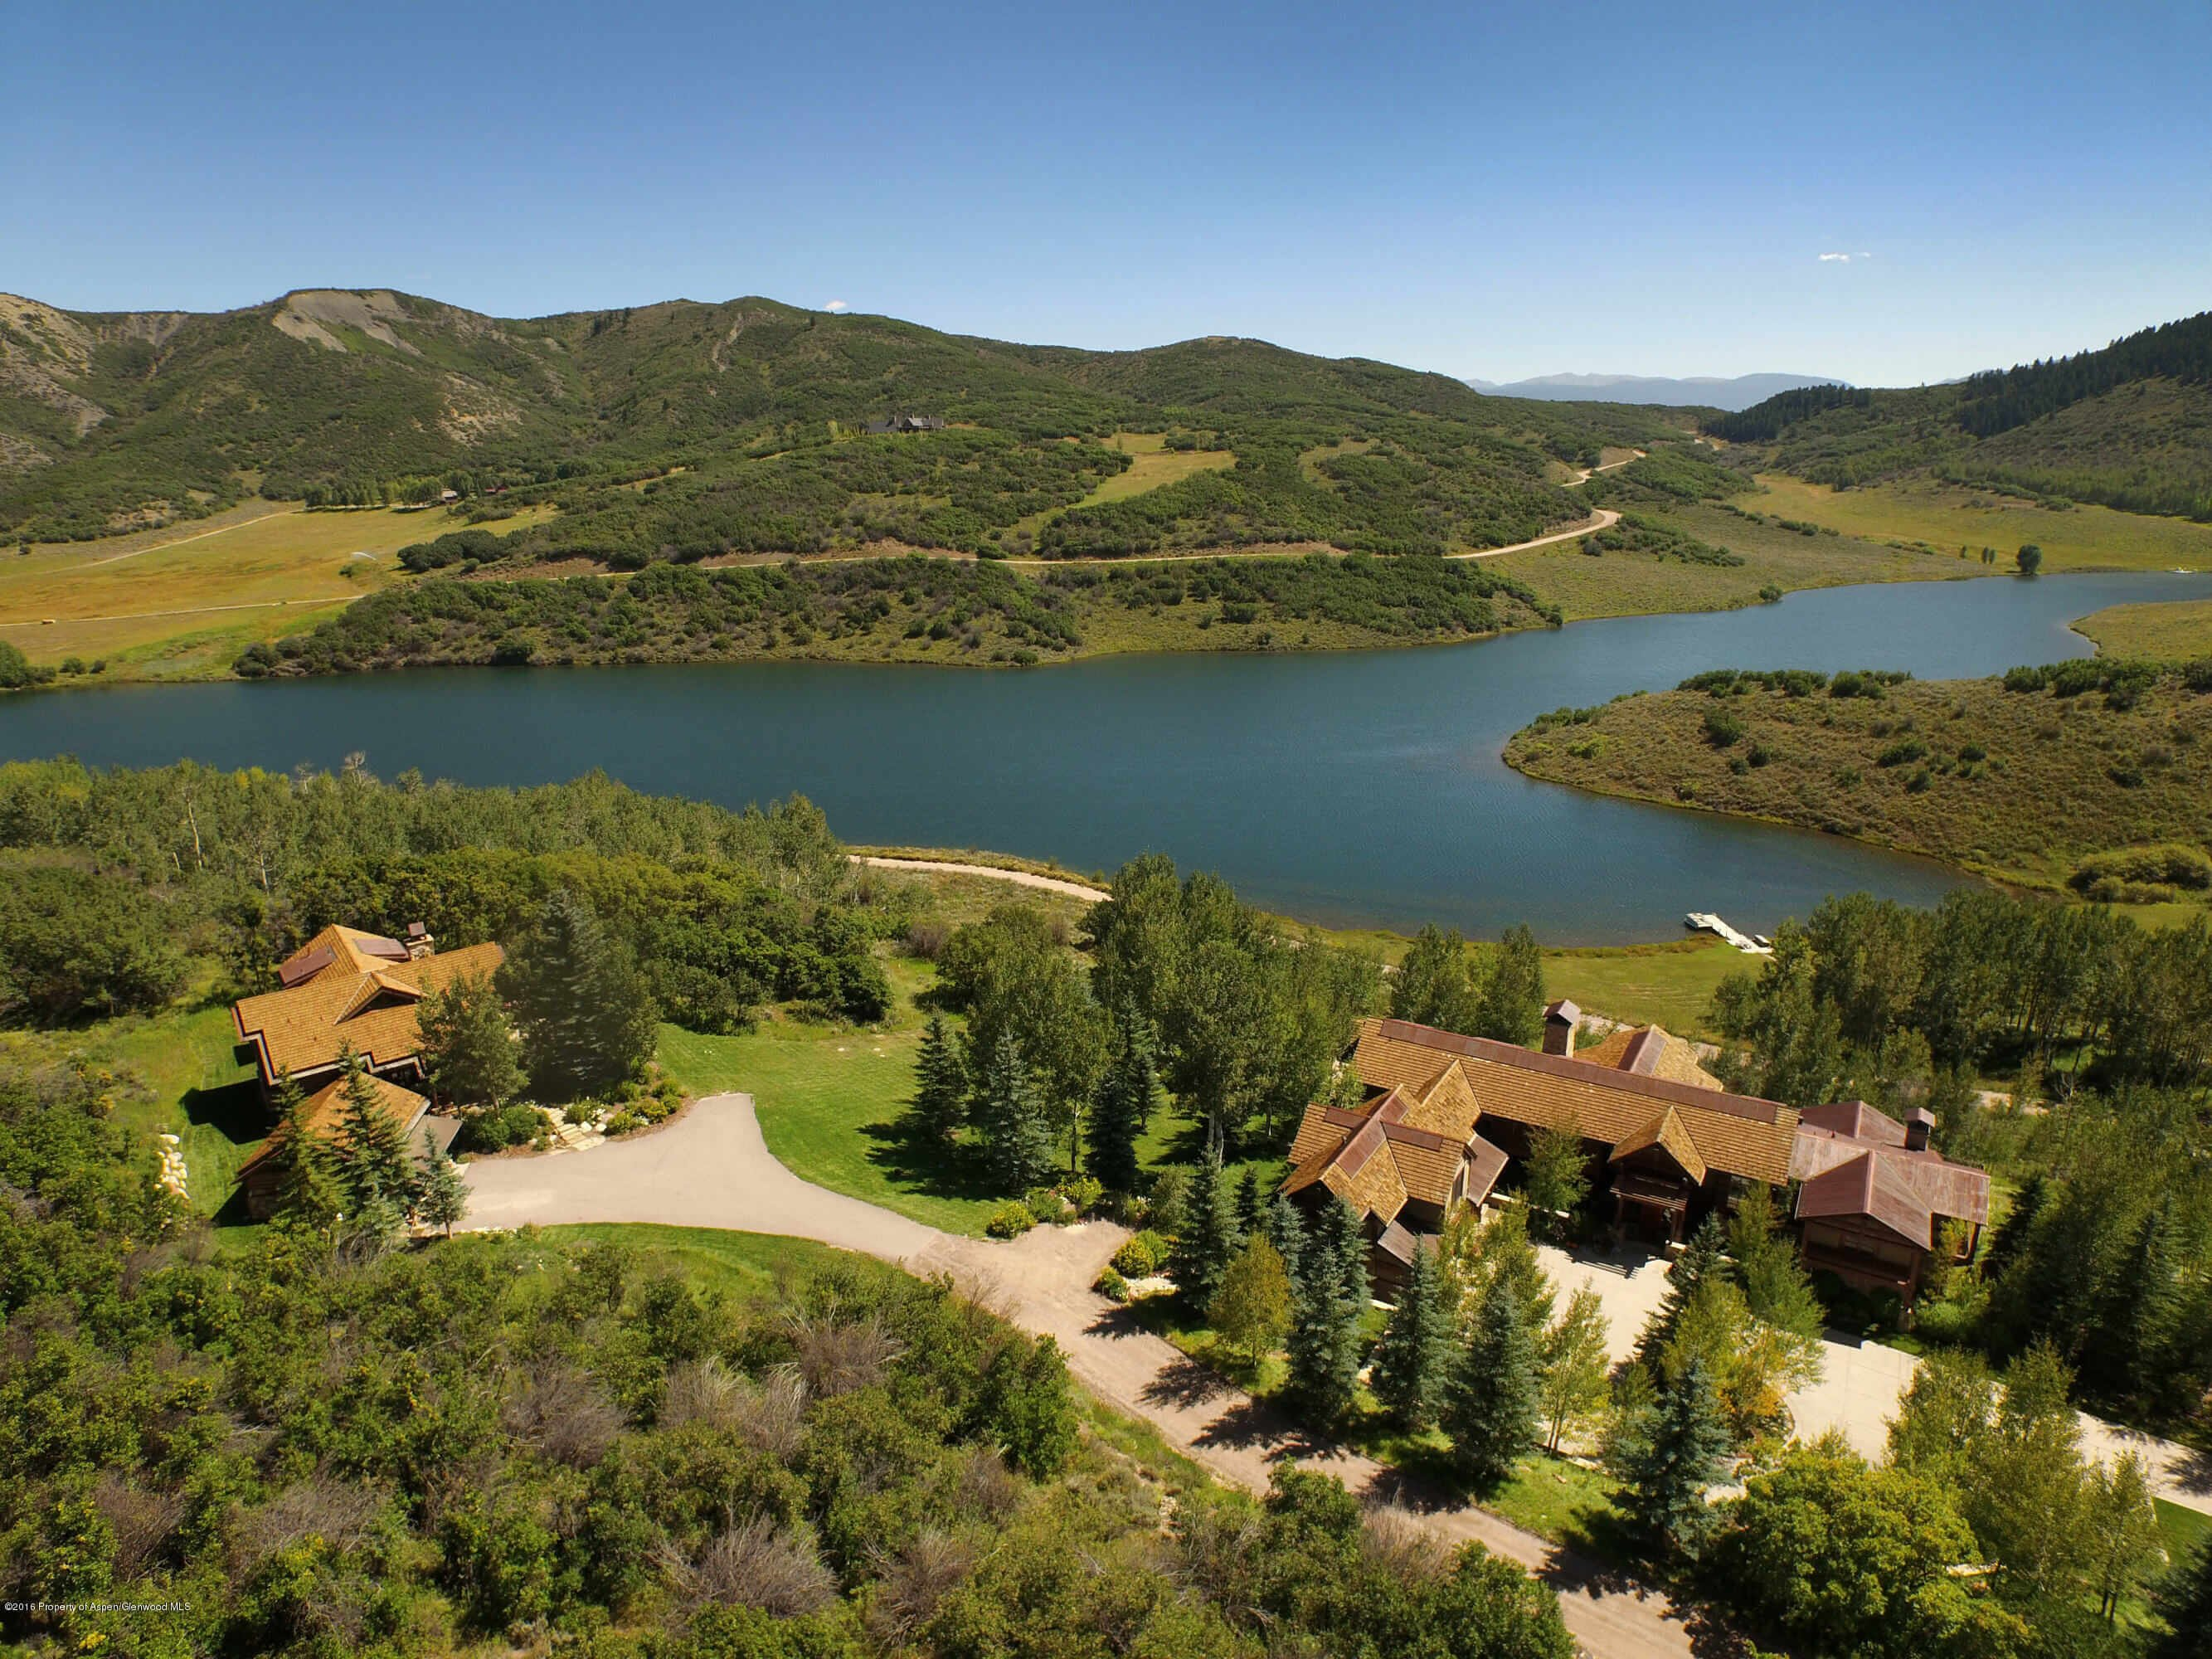 Wildcat Ranch: 2002 Built 13,000 Sq Ft Home on 500 Acres Closes at $9M/$688 Sq Ft Image